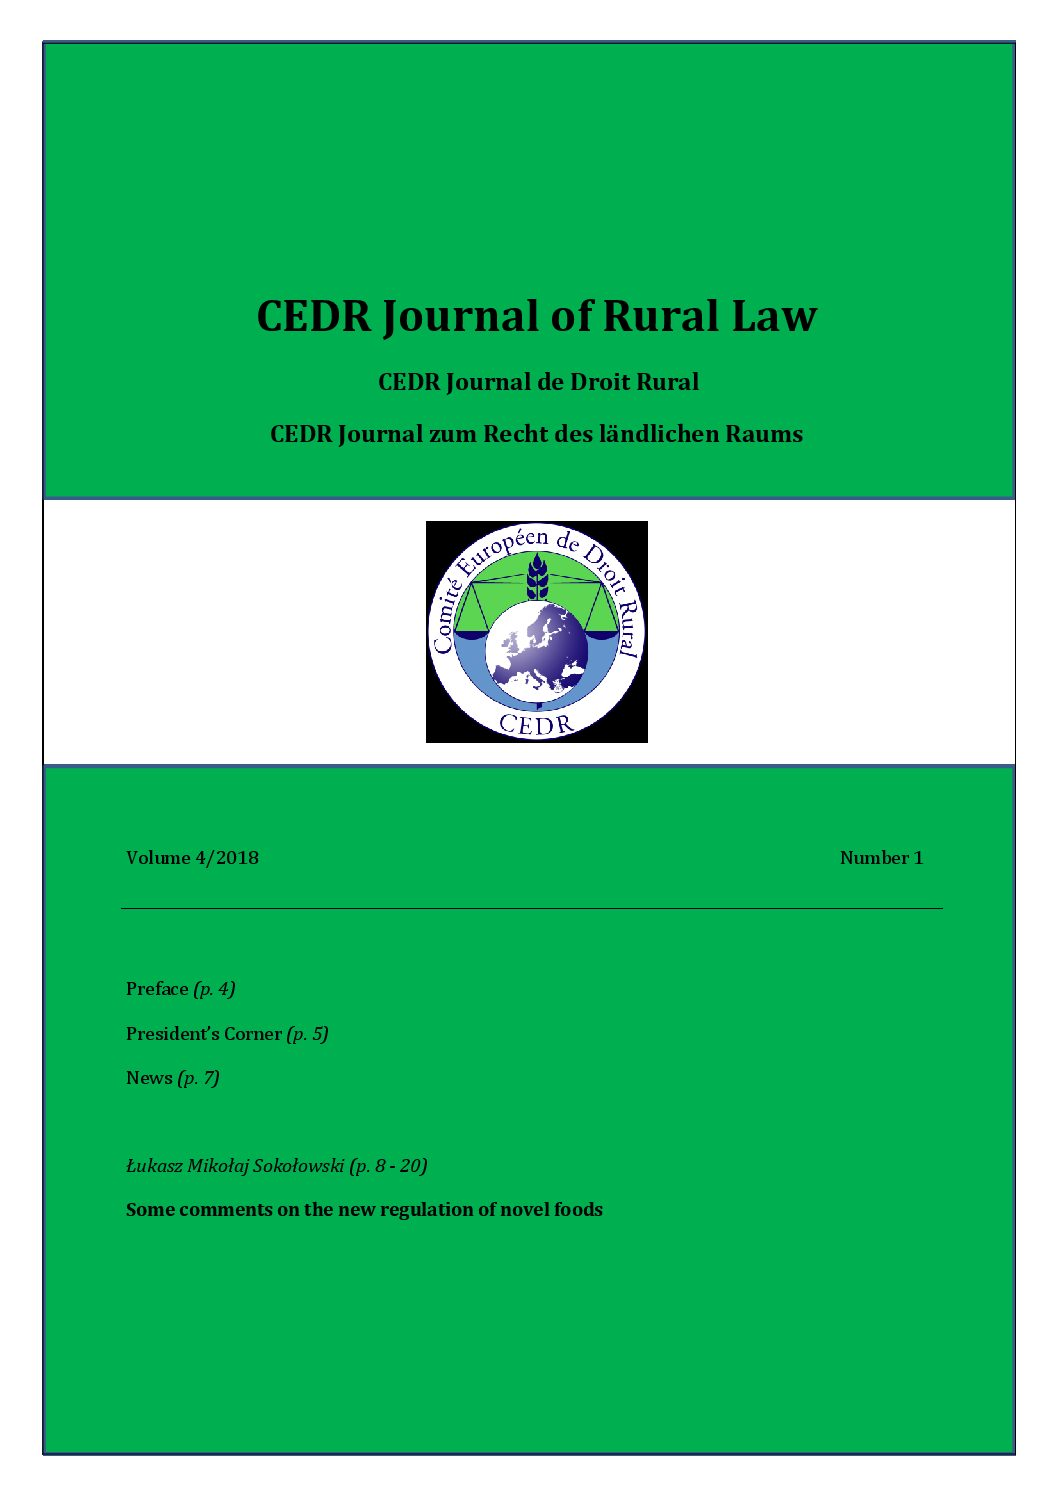 Journal of Rural Law Vol.4, N°1, 2018